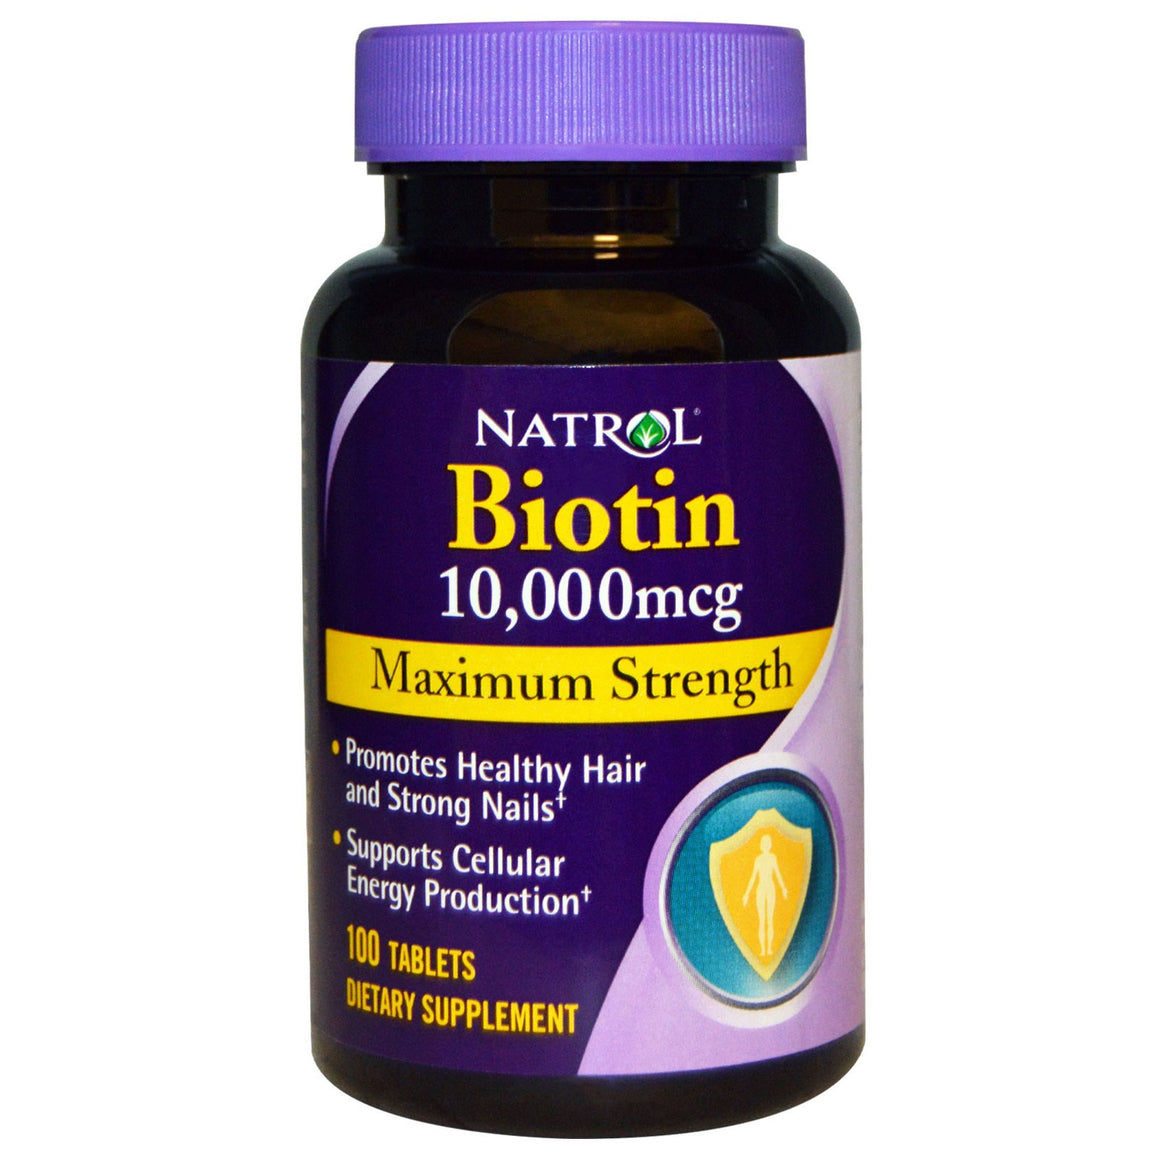 Биотин 10,000 мкг максимальная сила Biotin Maximum Strength 10,000 mcg